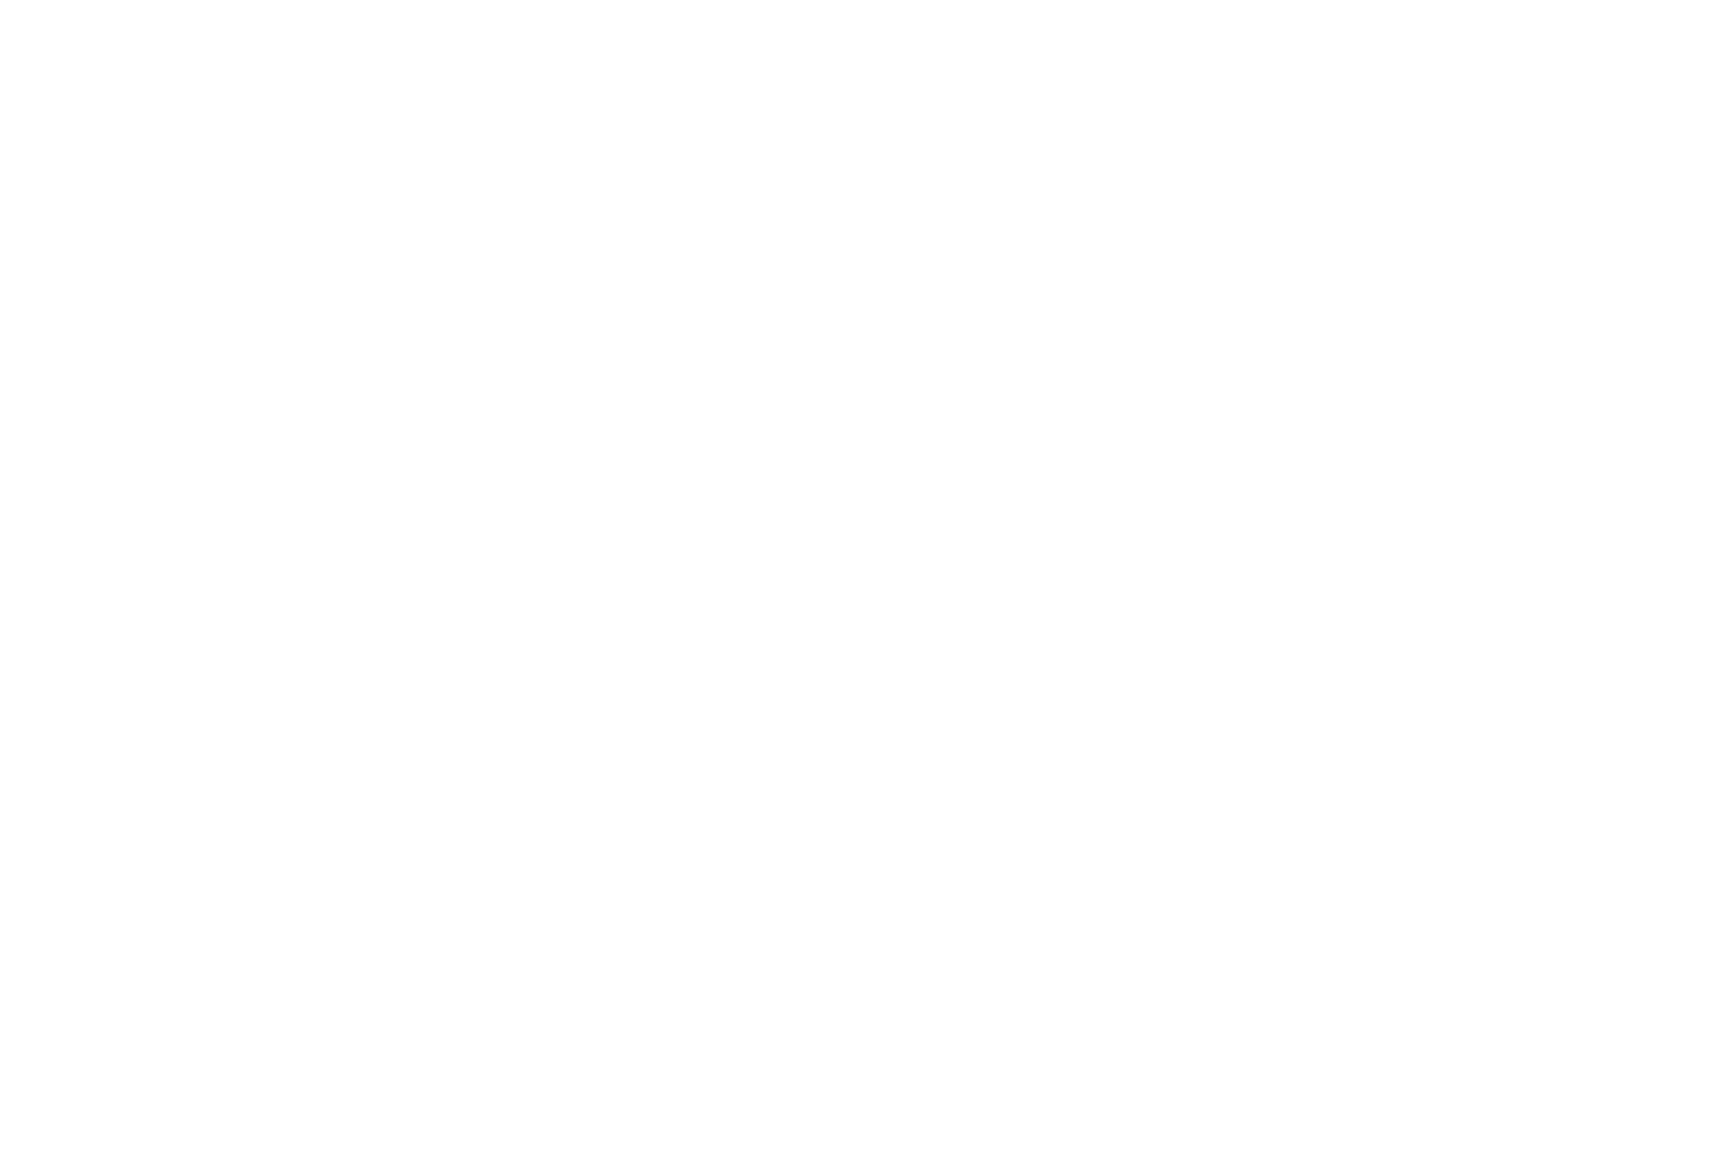 OFFICIAL SELECTION - Berlin Feminist Film Week - 2018 copy.png